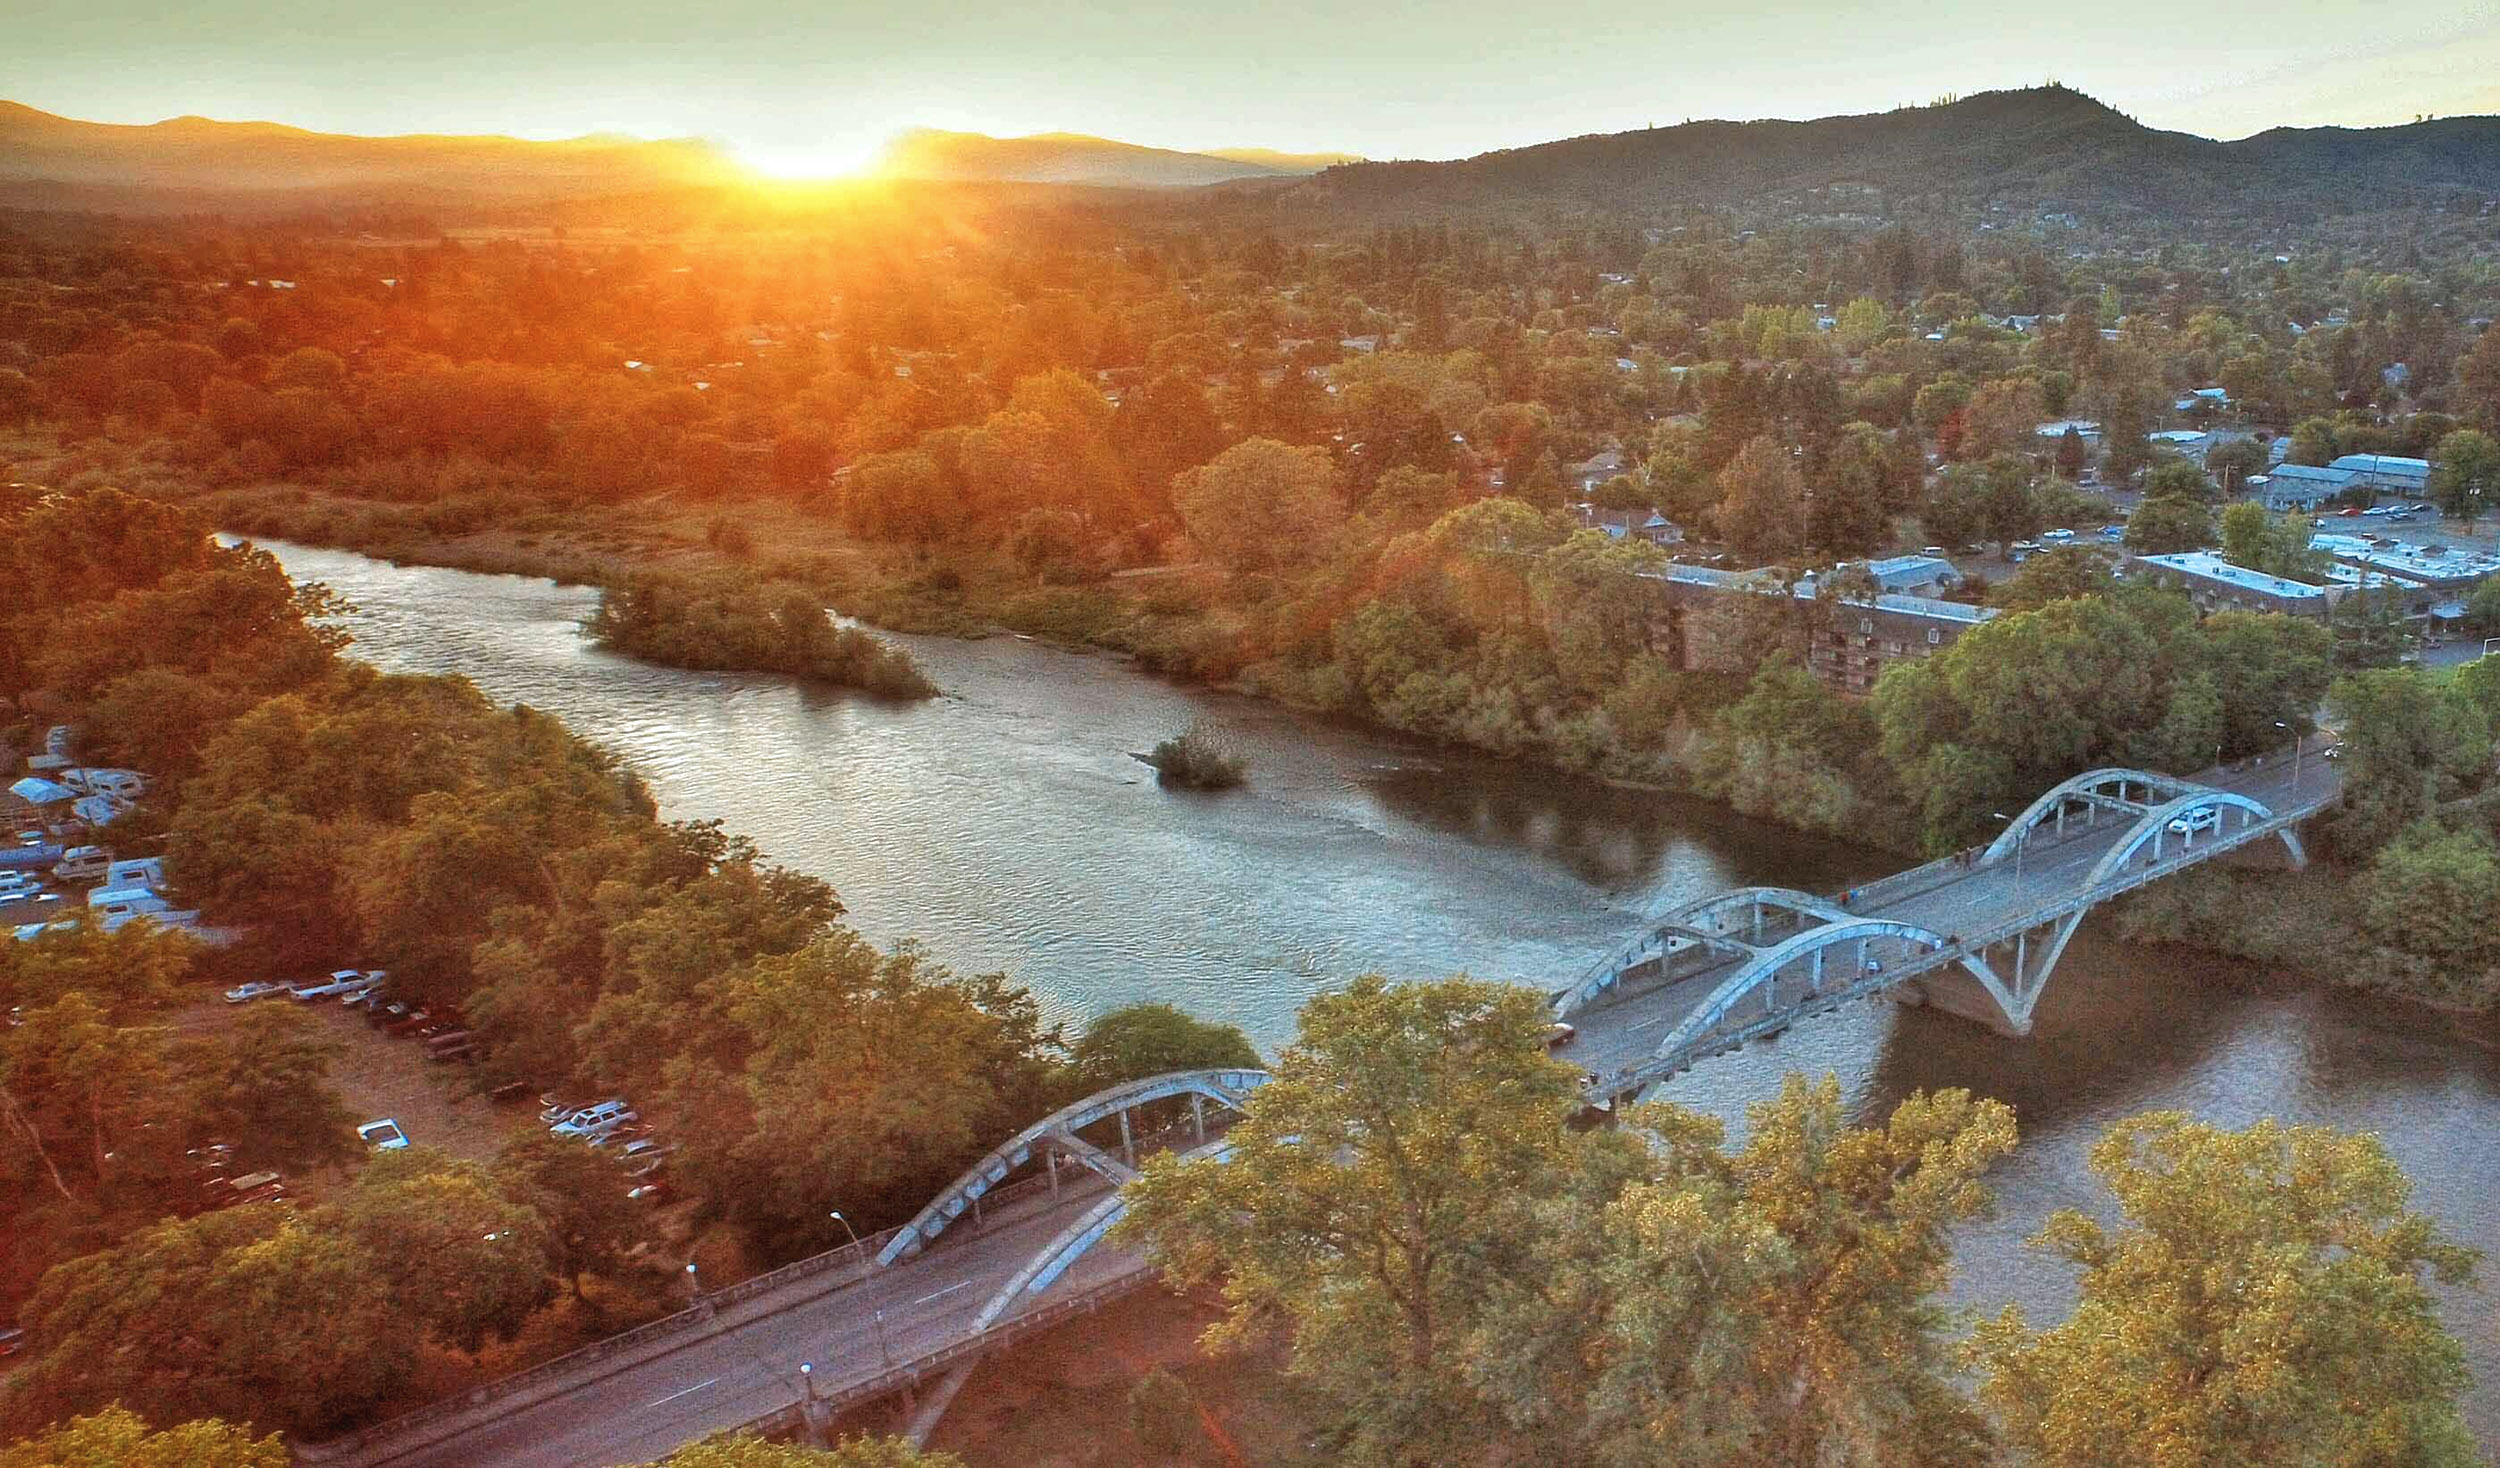 Bird's eye view of Grants Pass at sunset.